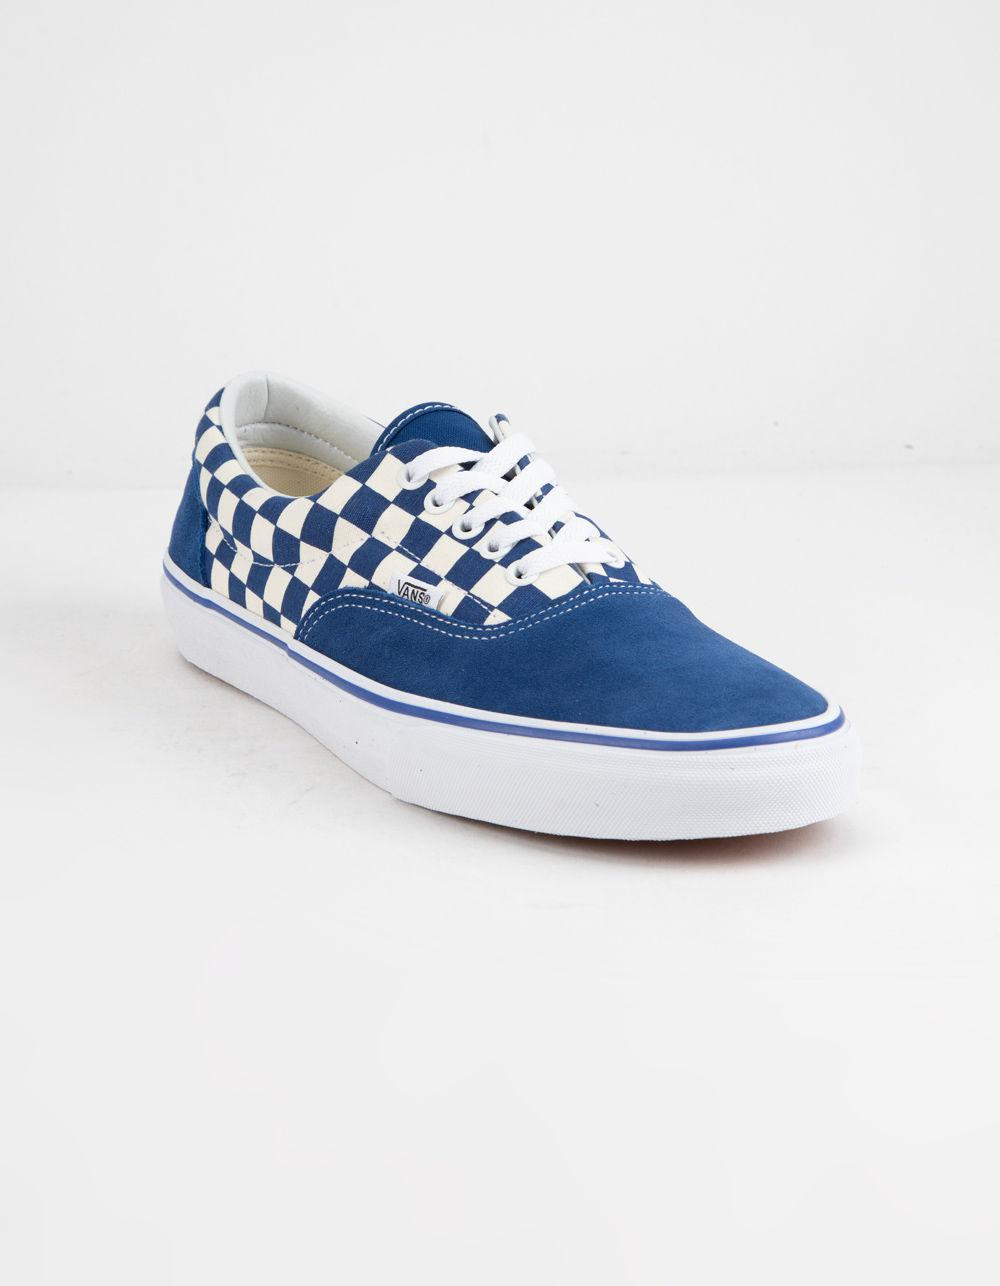 cc4a3915c4 Lyst - Vans Primary Check Era True Blue   White Shoes in Blue - Save 2%